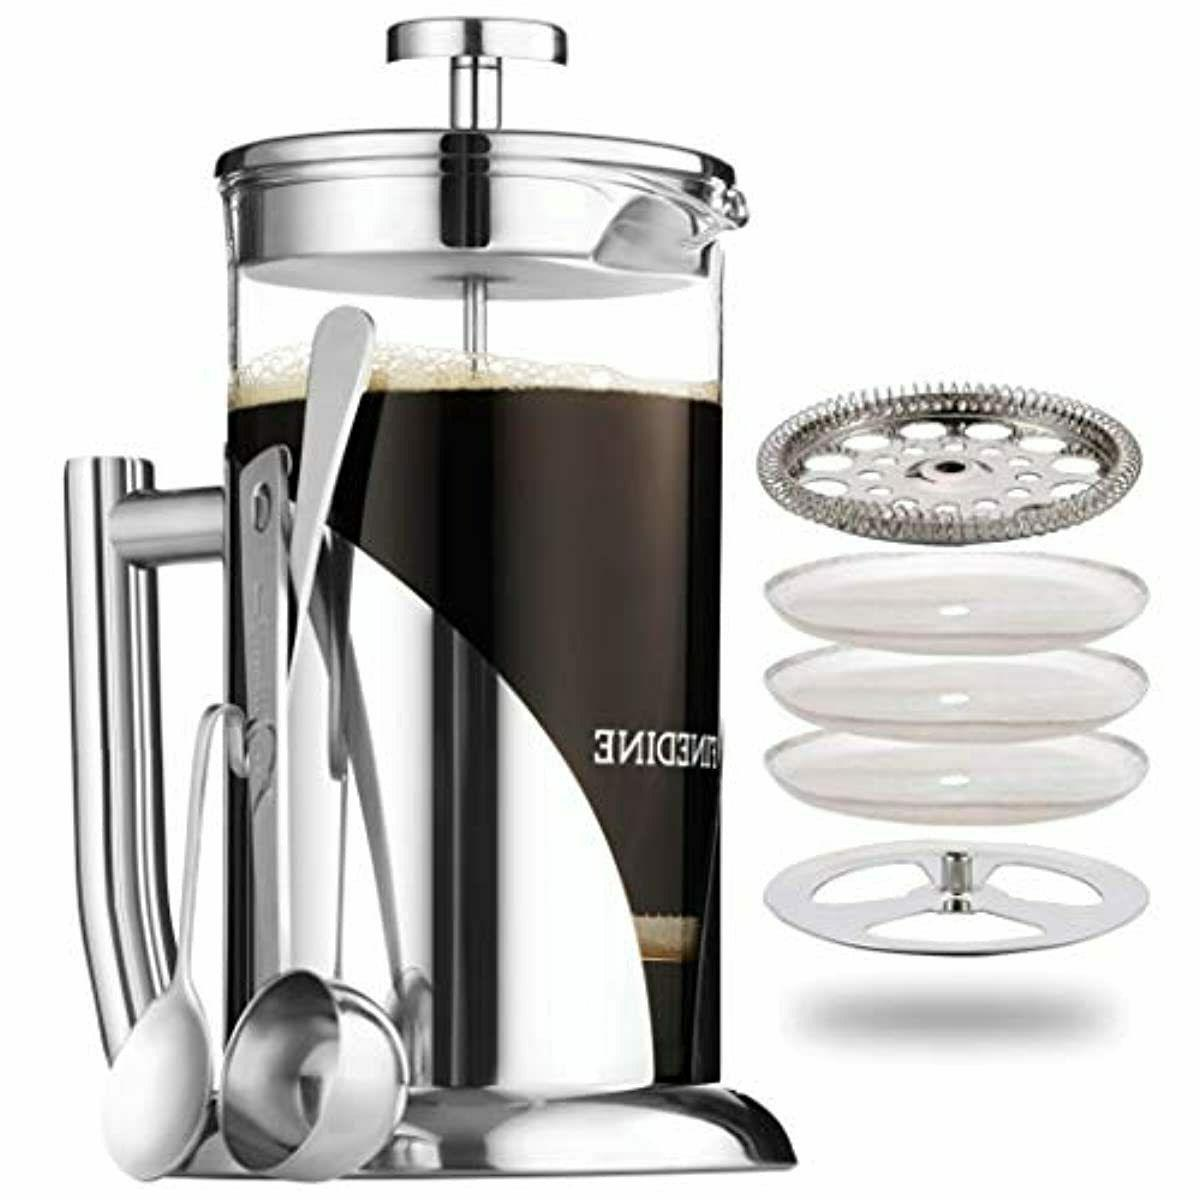 new french press coffee maker by stainless